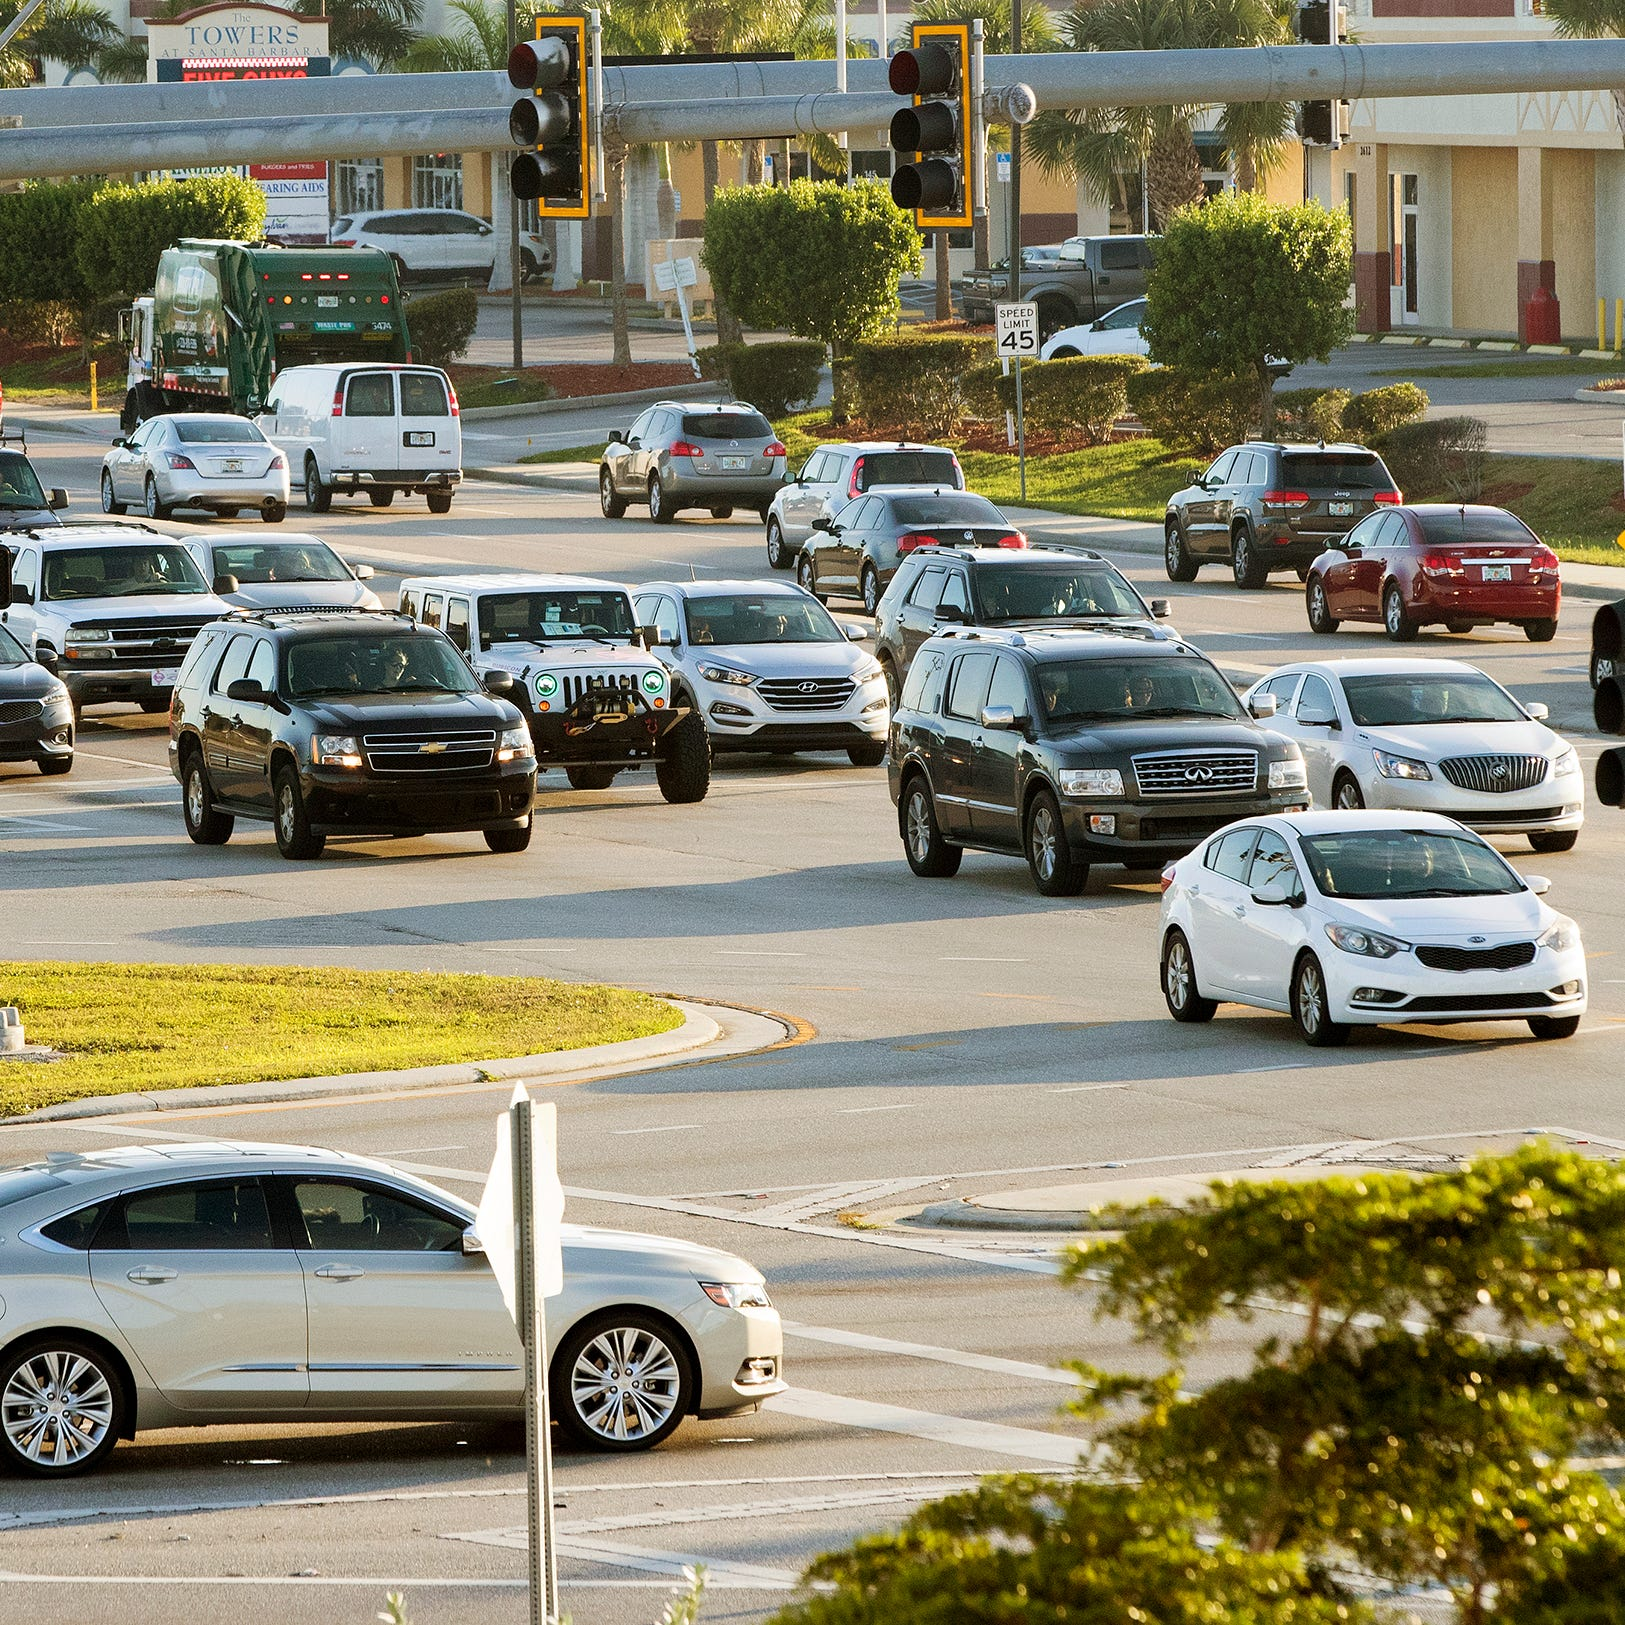 Cape Coral traffic: the top five hot spots for car crashes share common thread